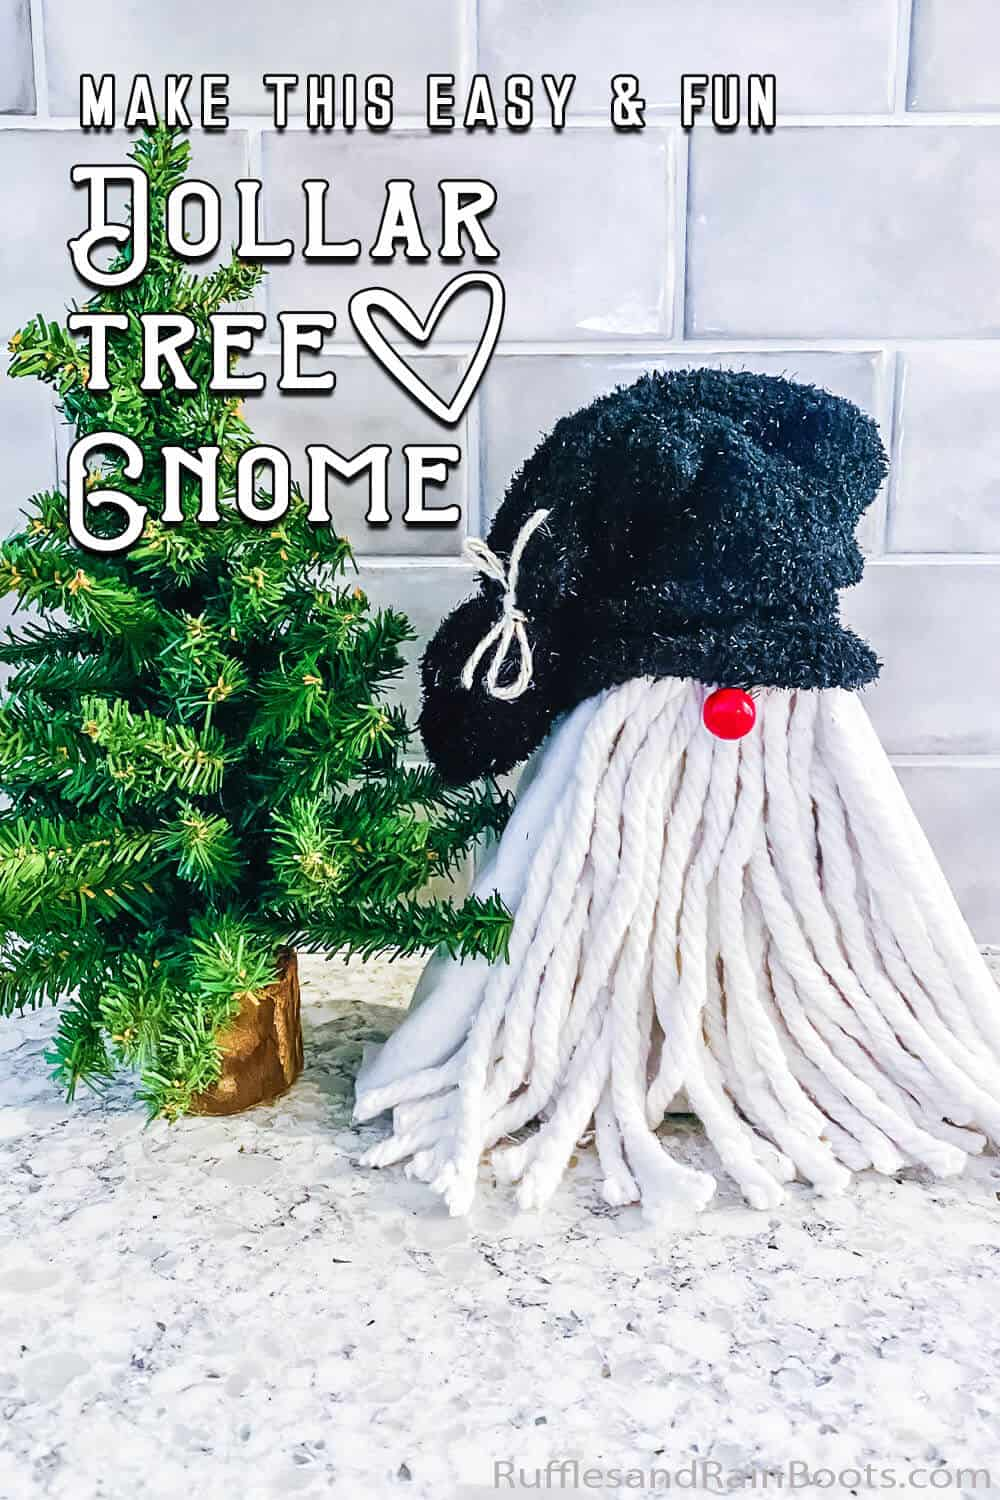 dollar store gnome from a sock and triangle shelf with text which reads make this easy & fun dollar tree gnome